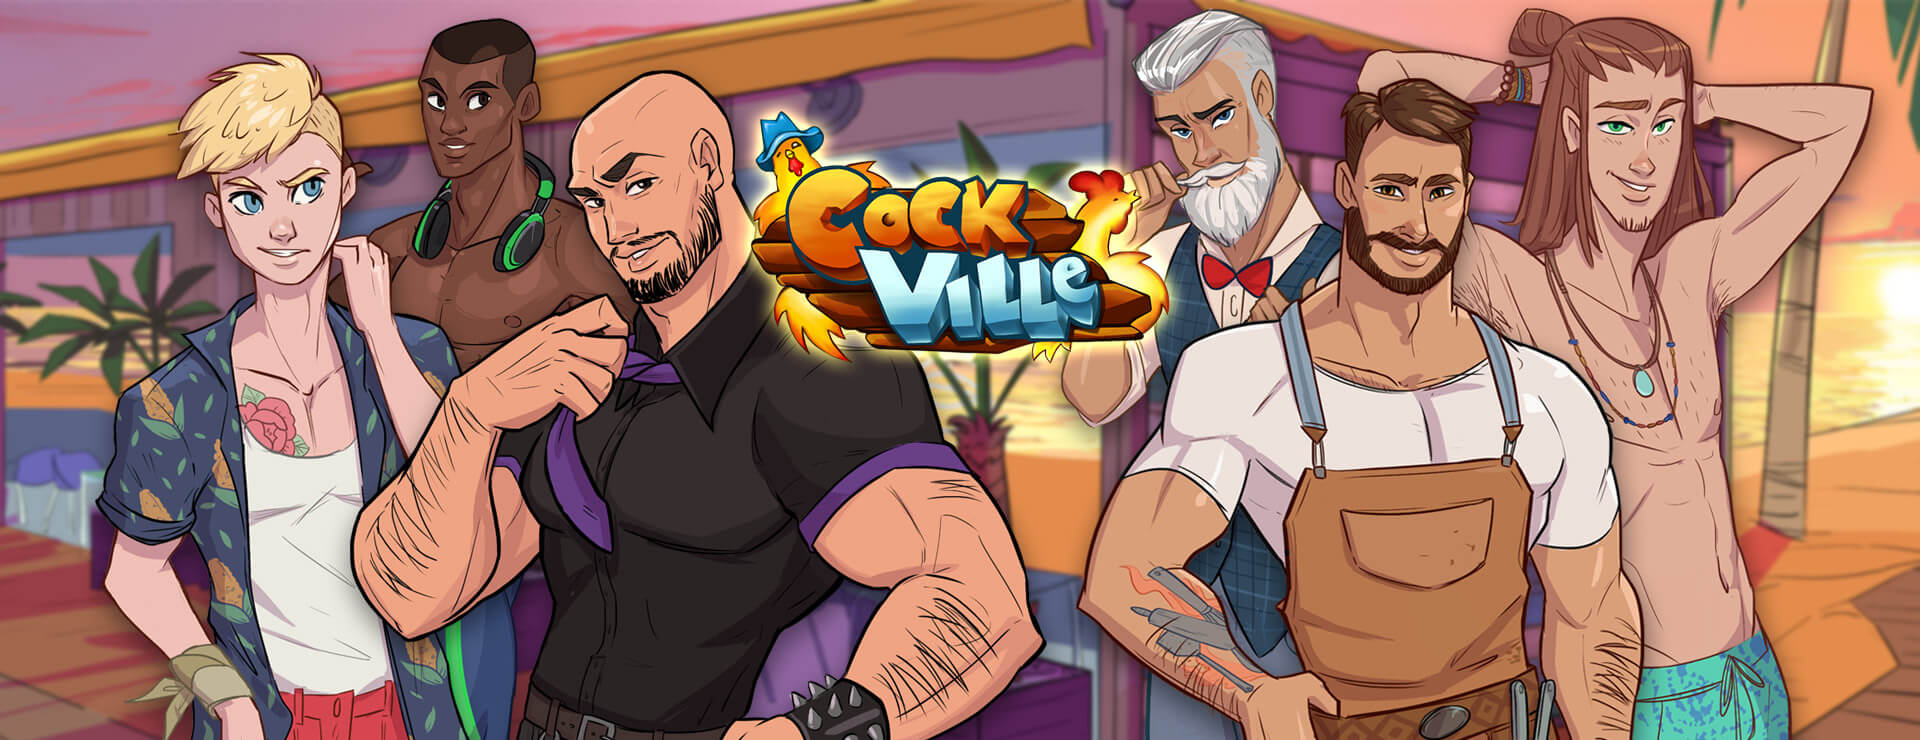 Cockville - Dating Sim Game